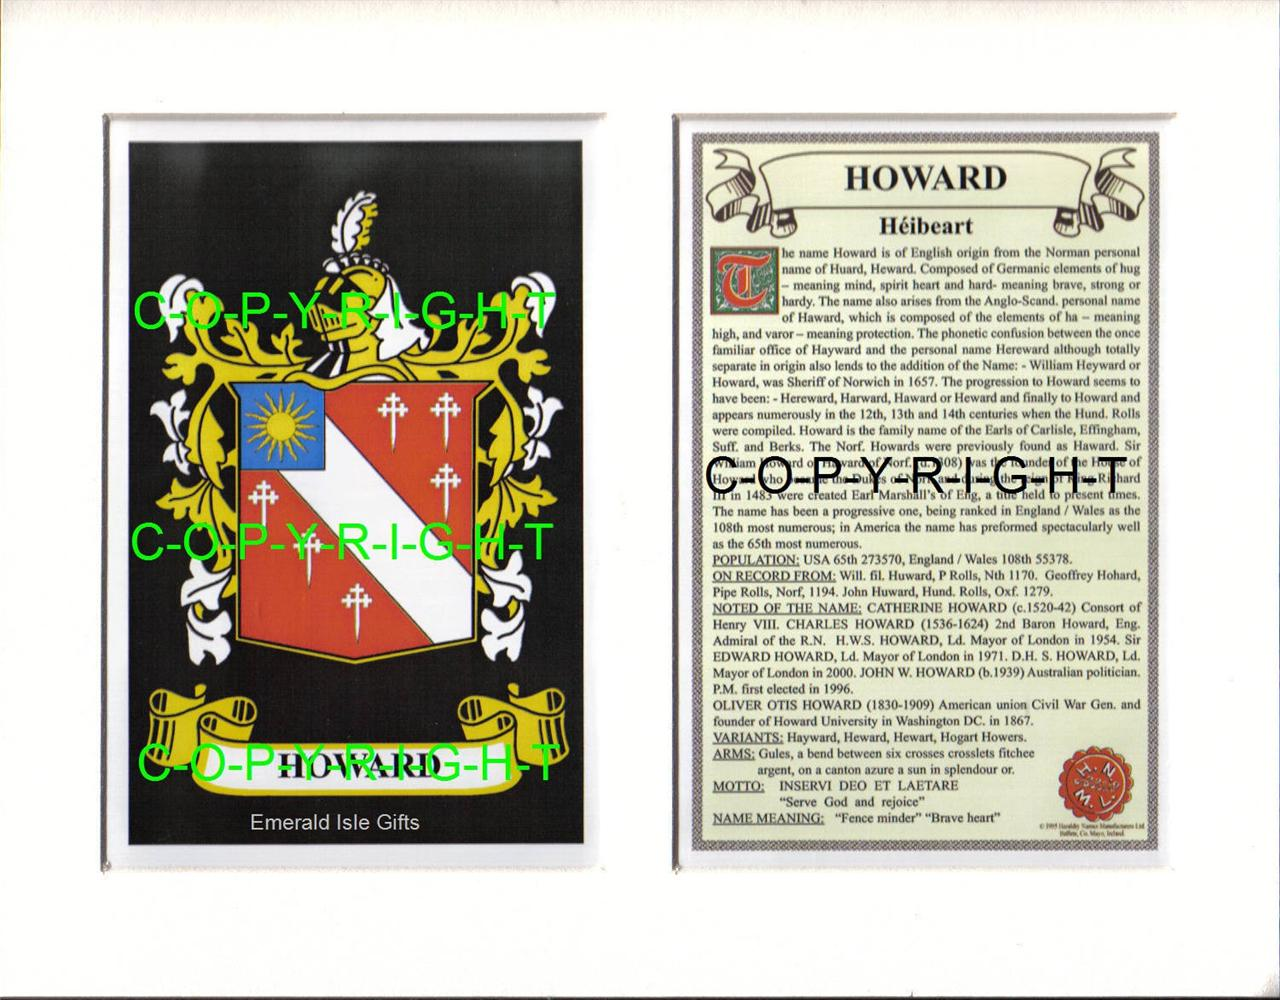 HOWARD-Family-Coat-of-Arms-Crest-History-Available-Mounted-or-Framed